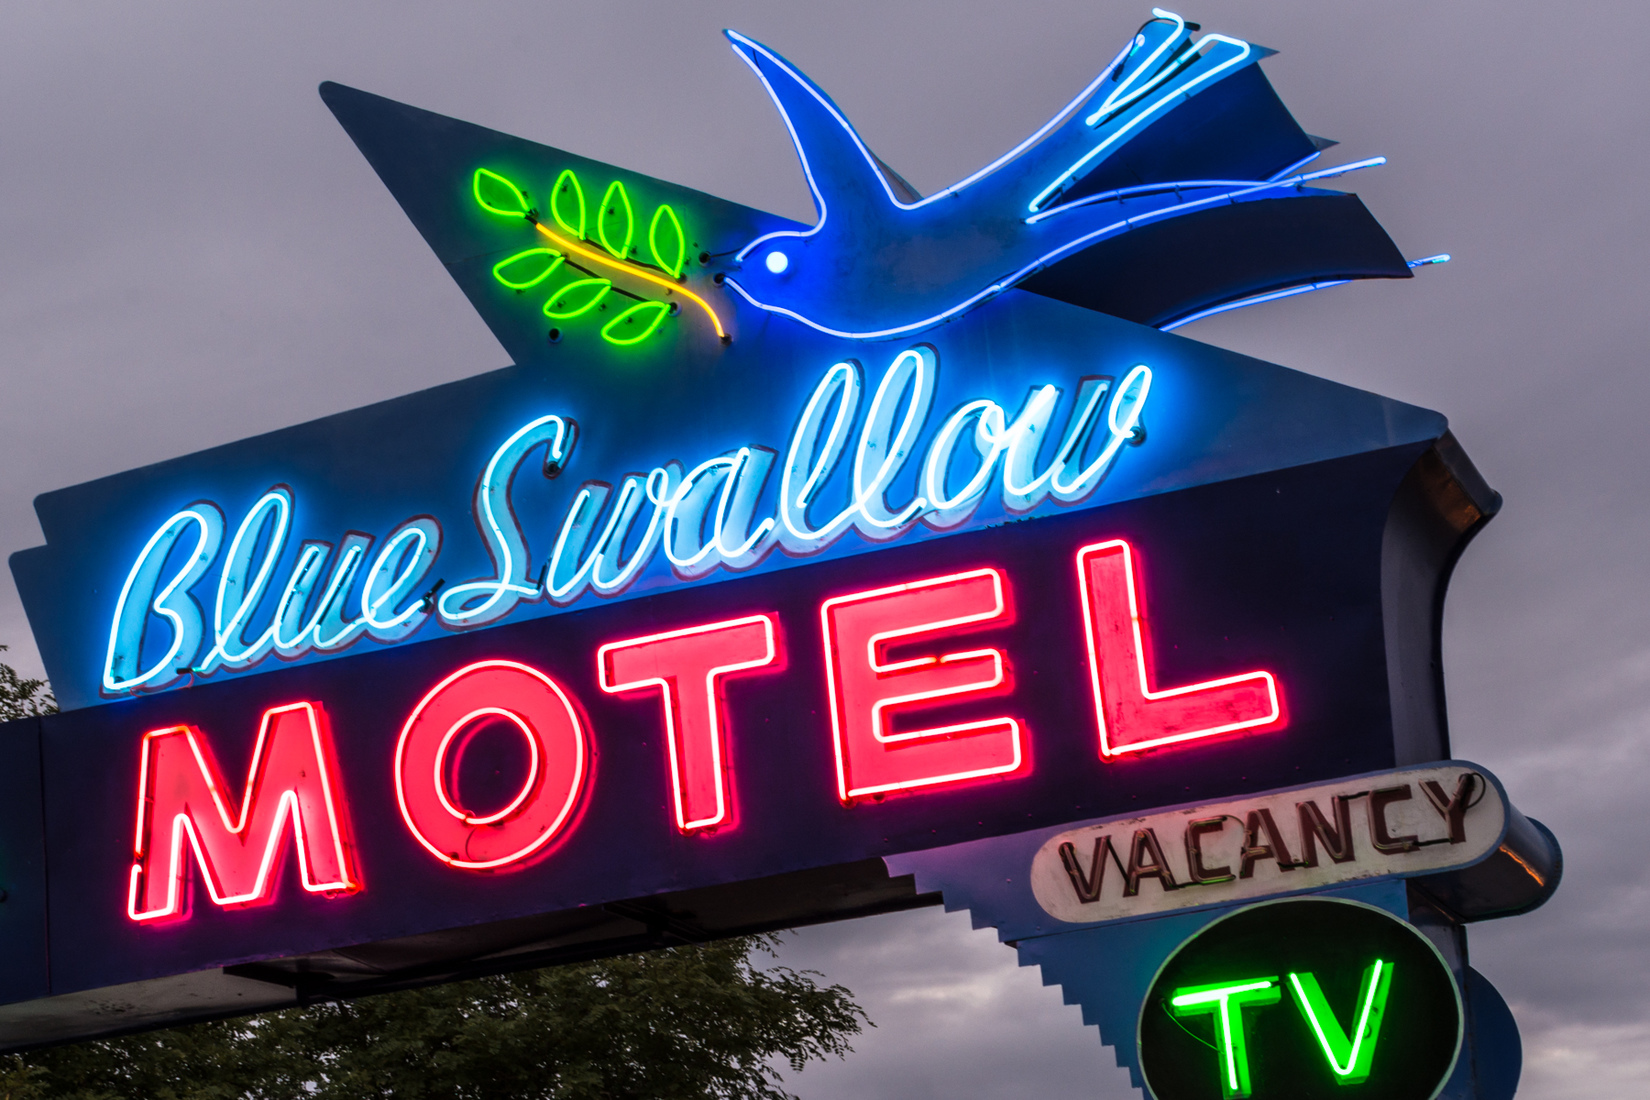 Road Signs Blue Swallow Motel